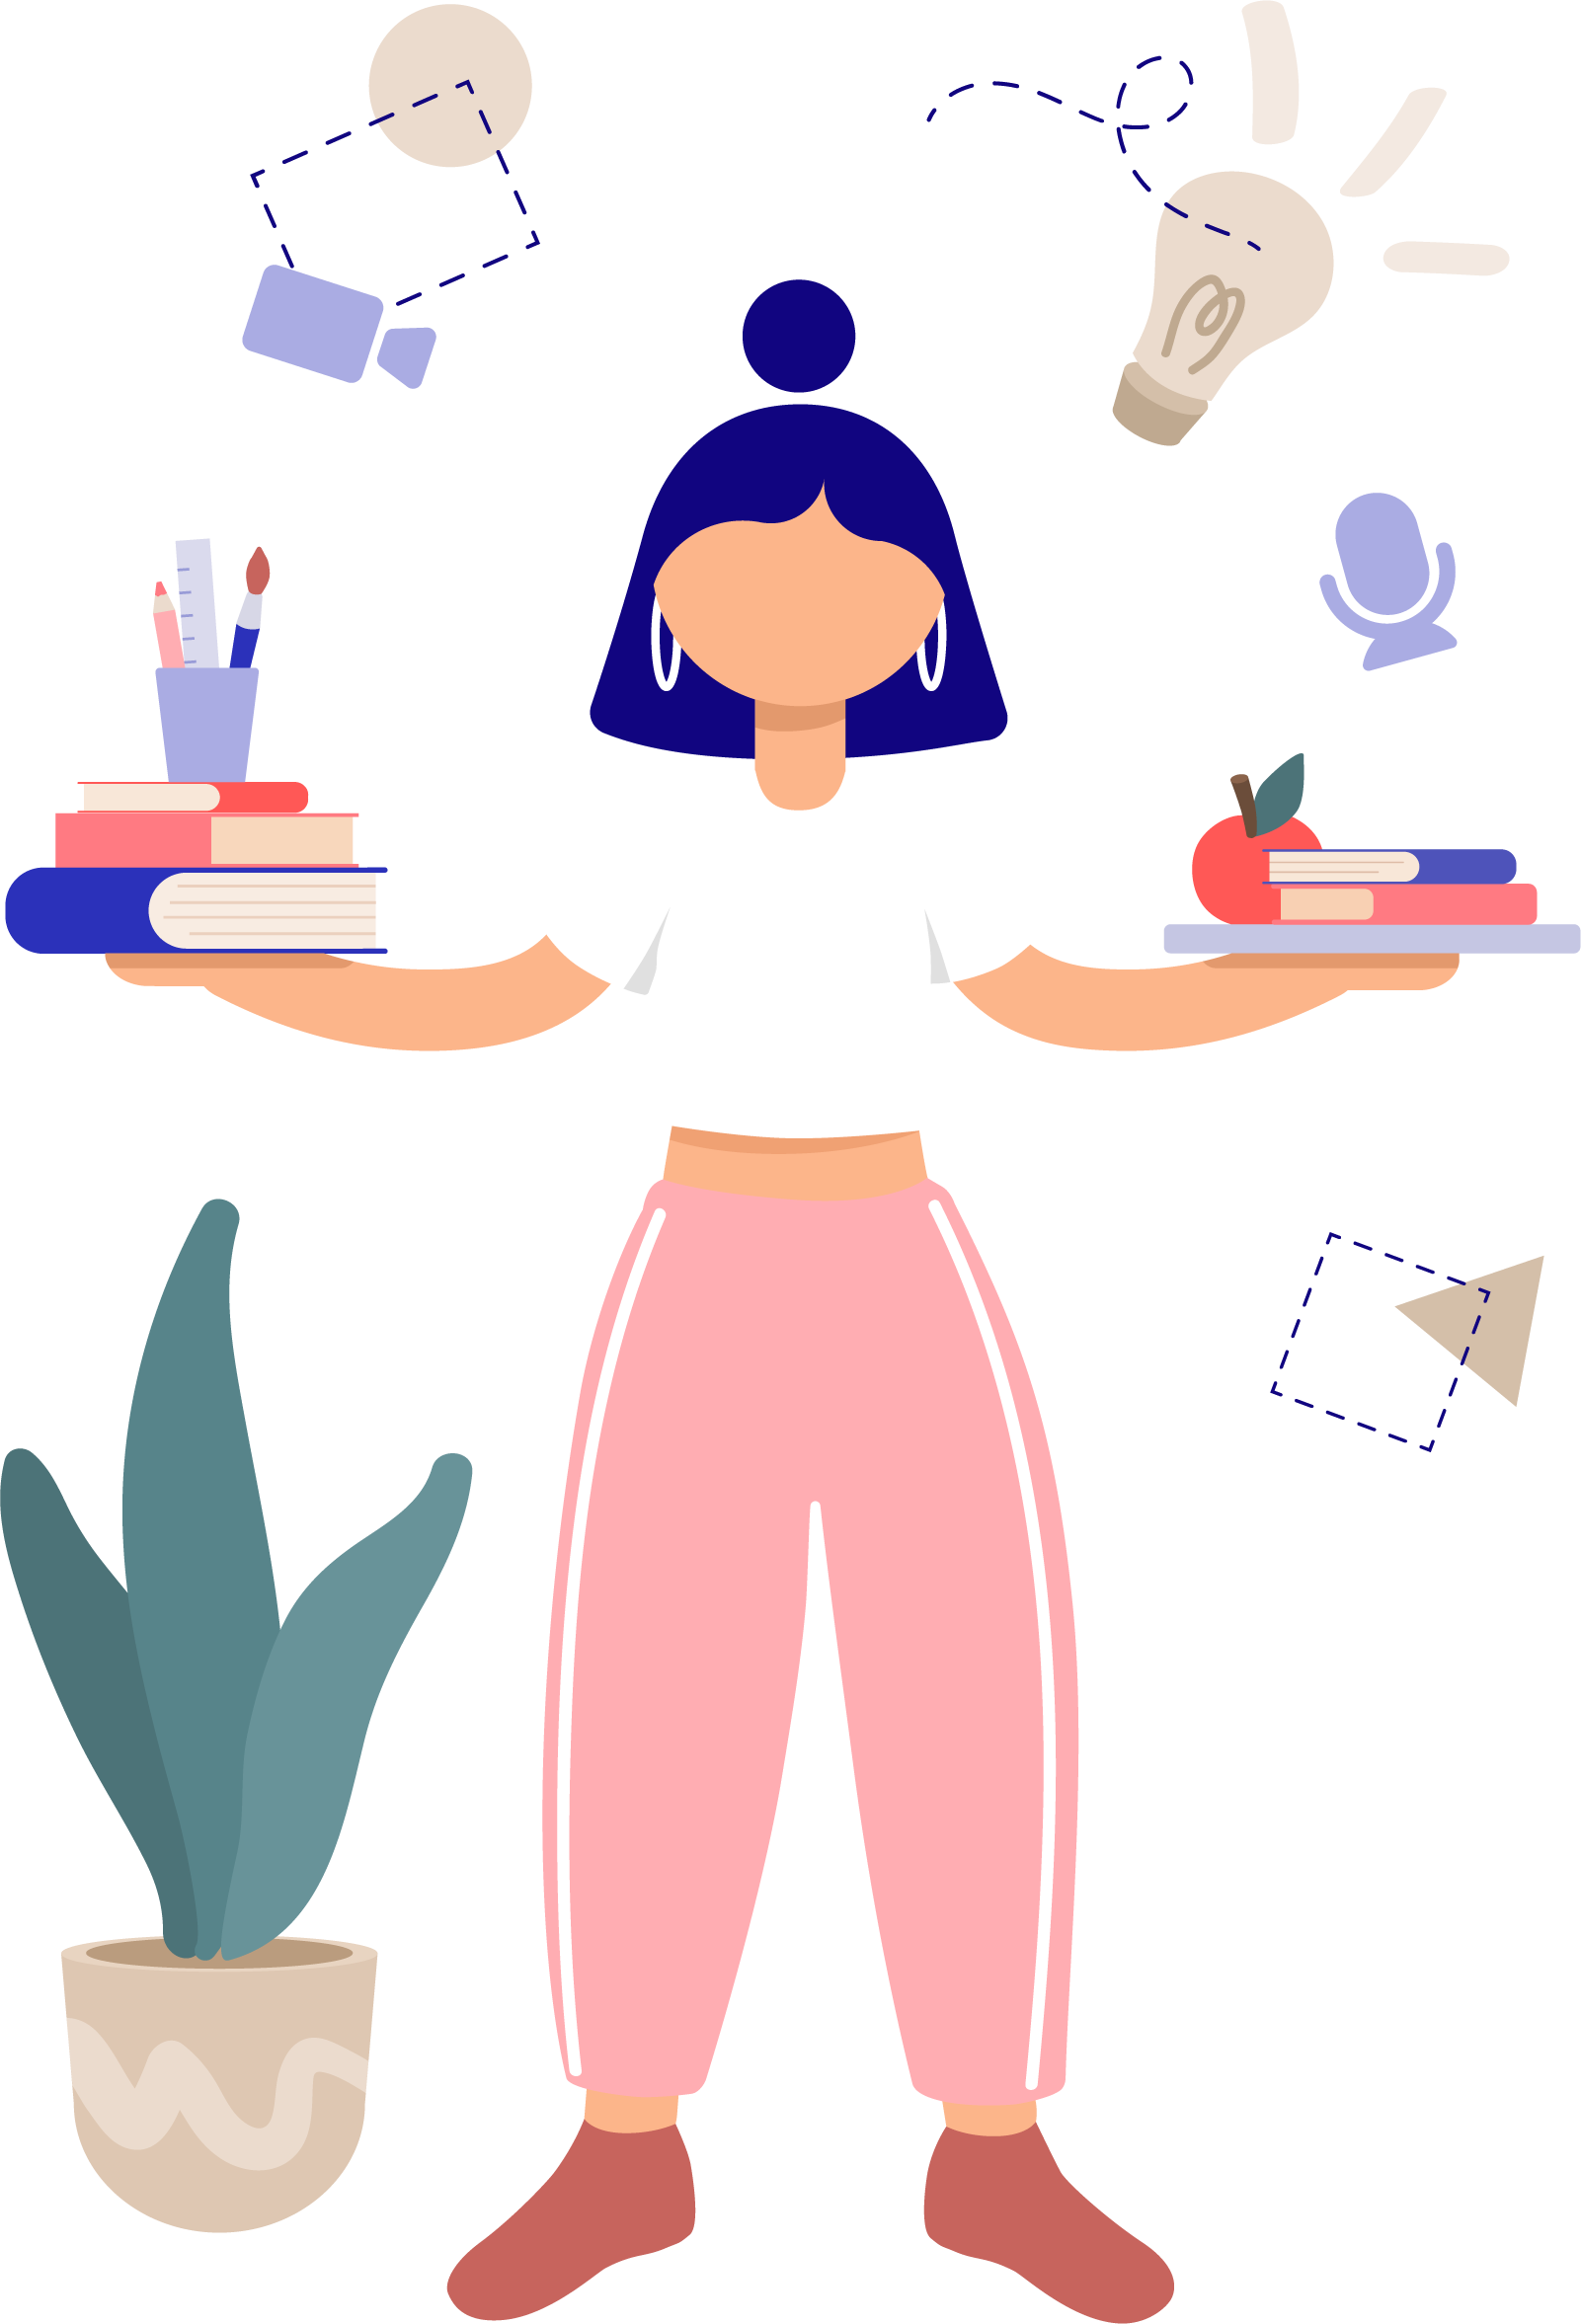 A person holding books, paints, and an apple. Their arms are spread out, balancing these objects. Icons for a mic, video, a lightbulb, and geometric shapes float around them.